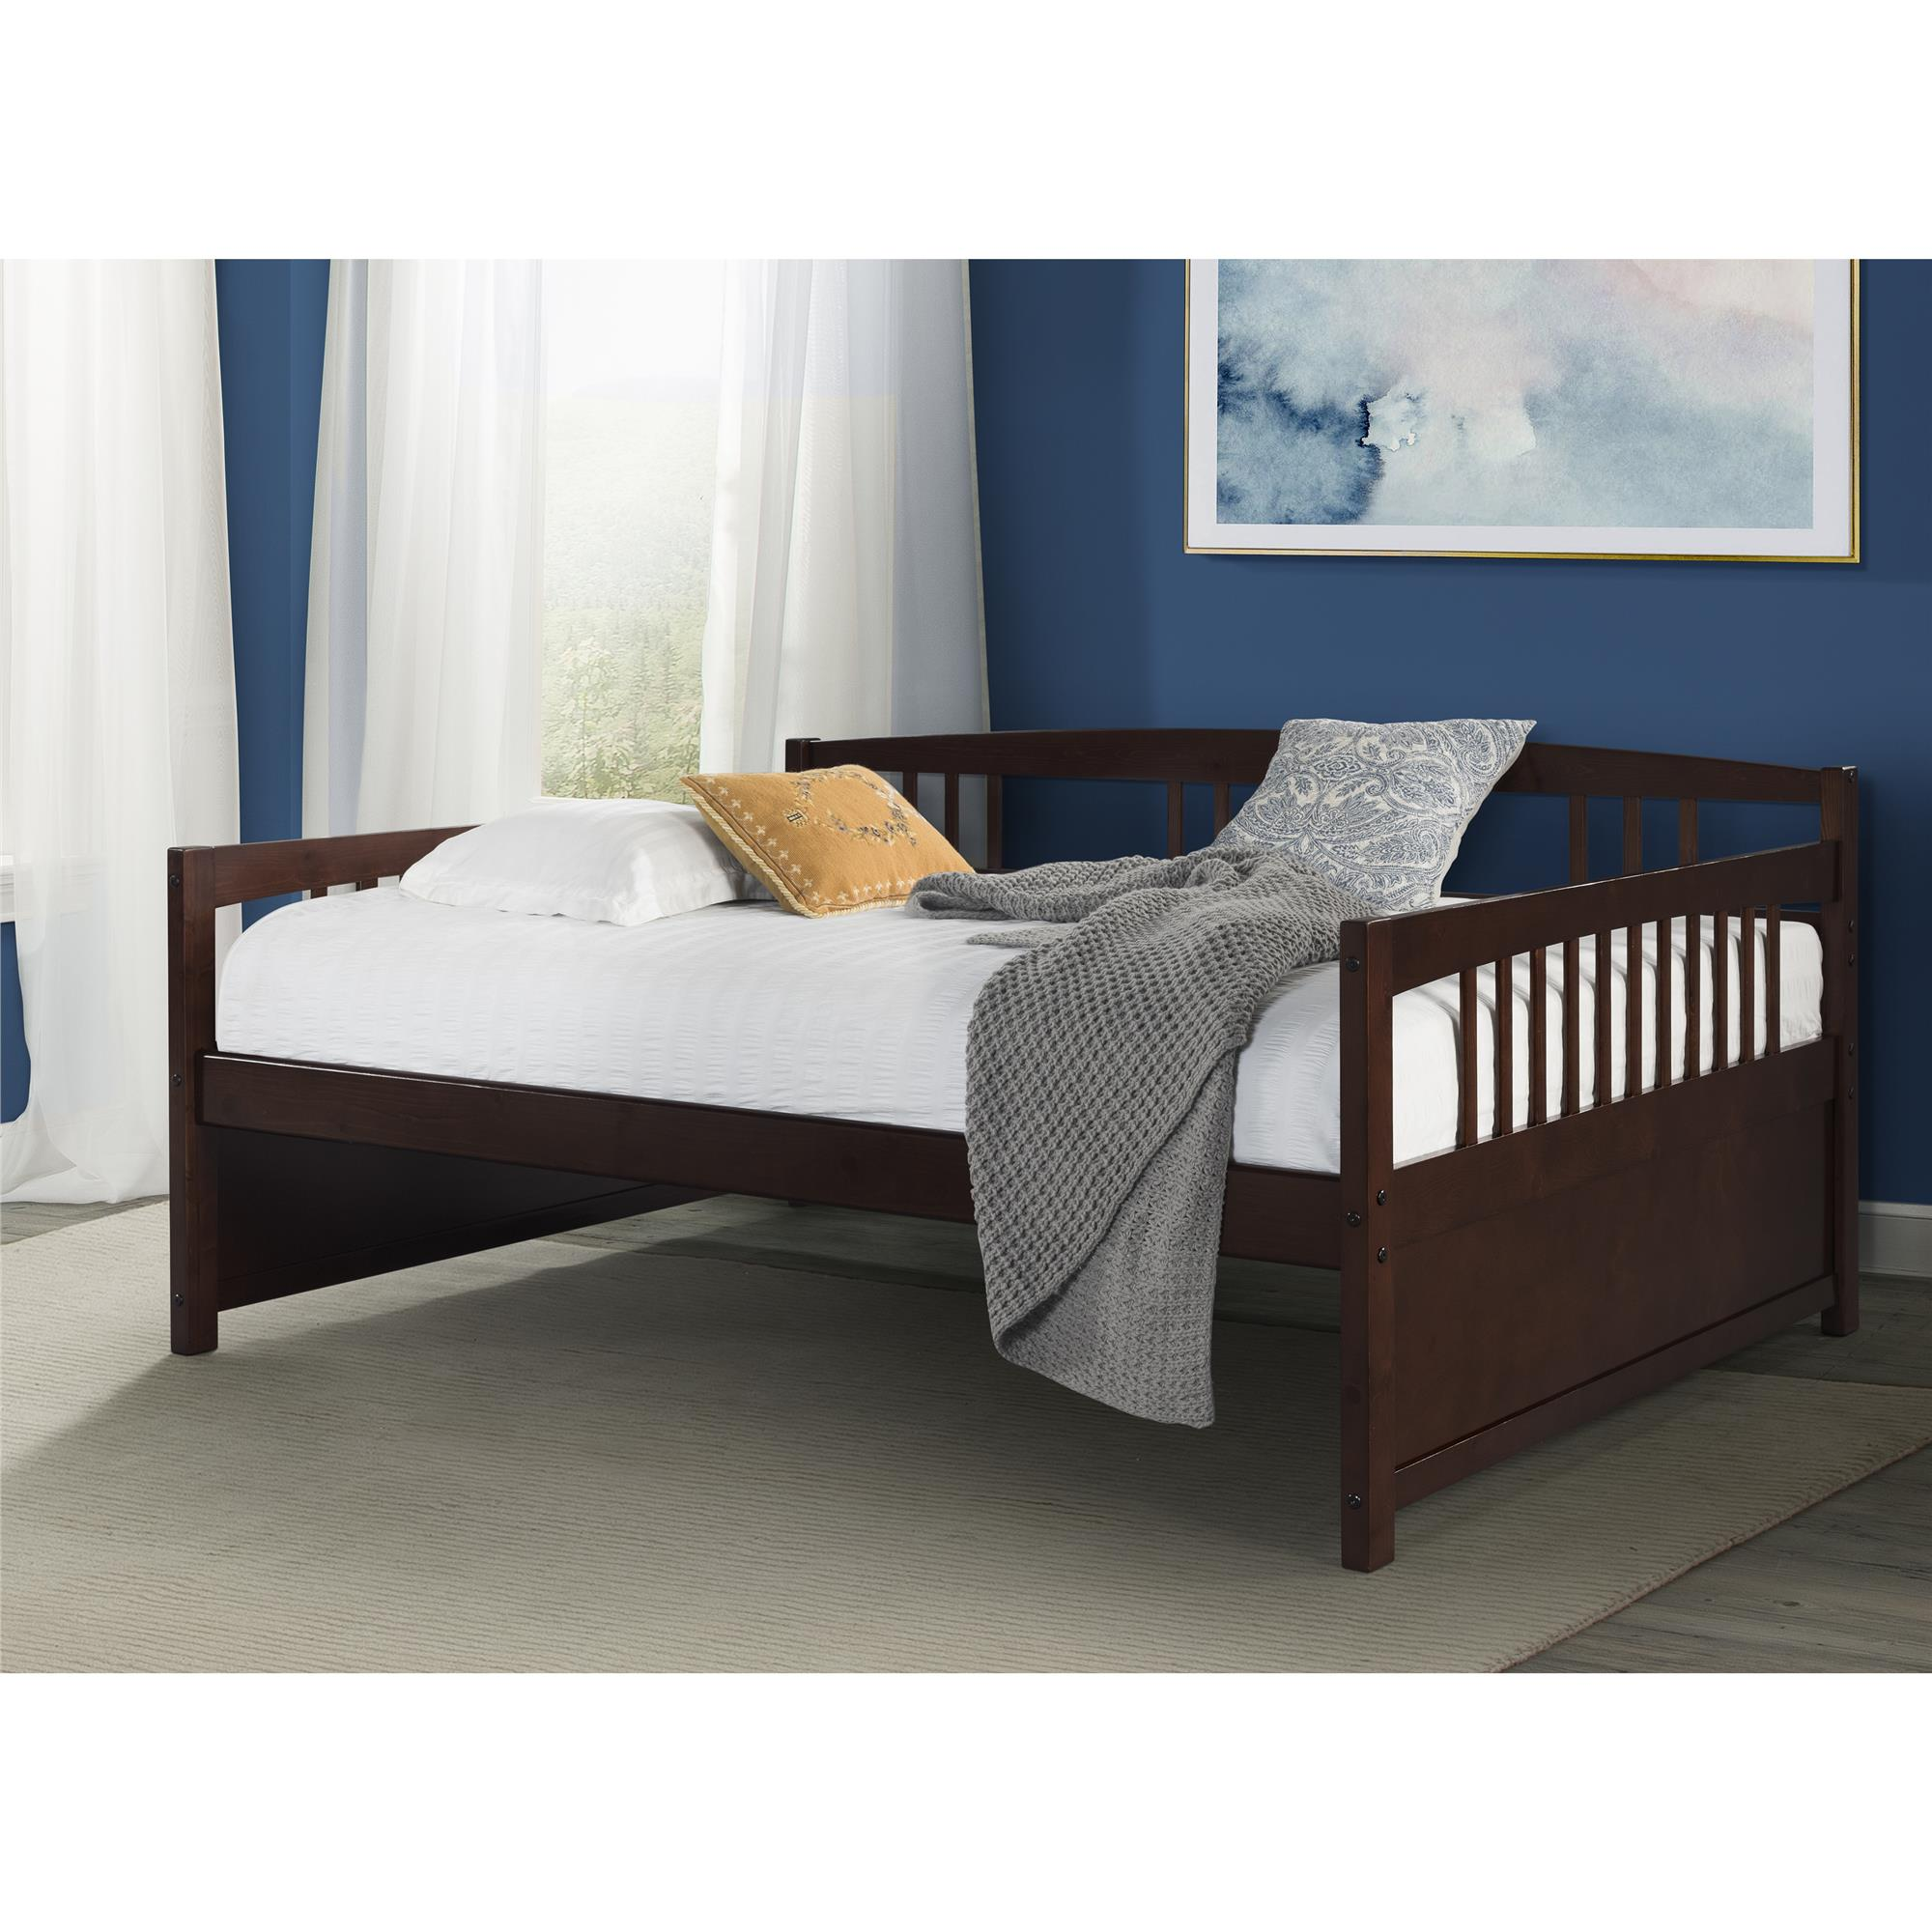 dorel living morgan wood daybed full size frame with slats espresso